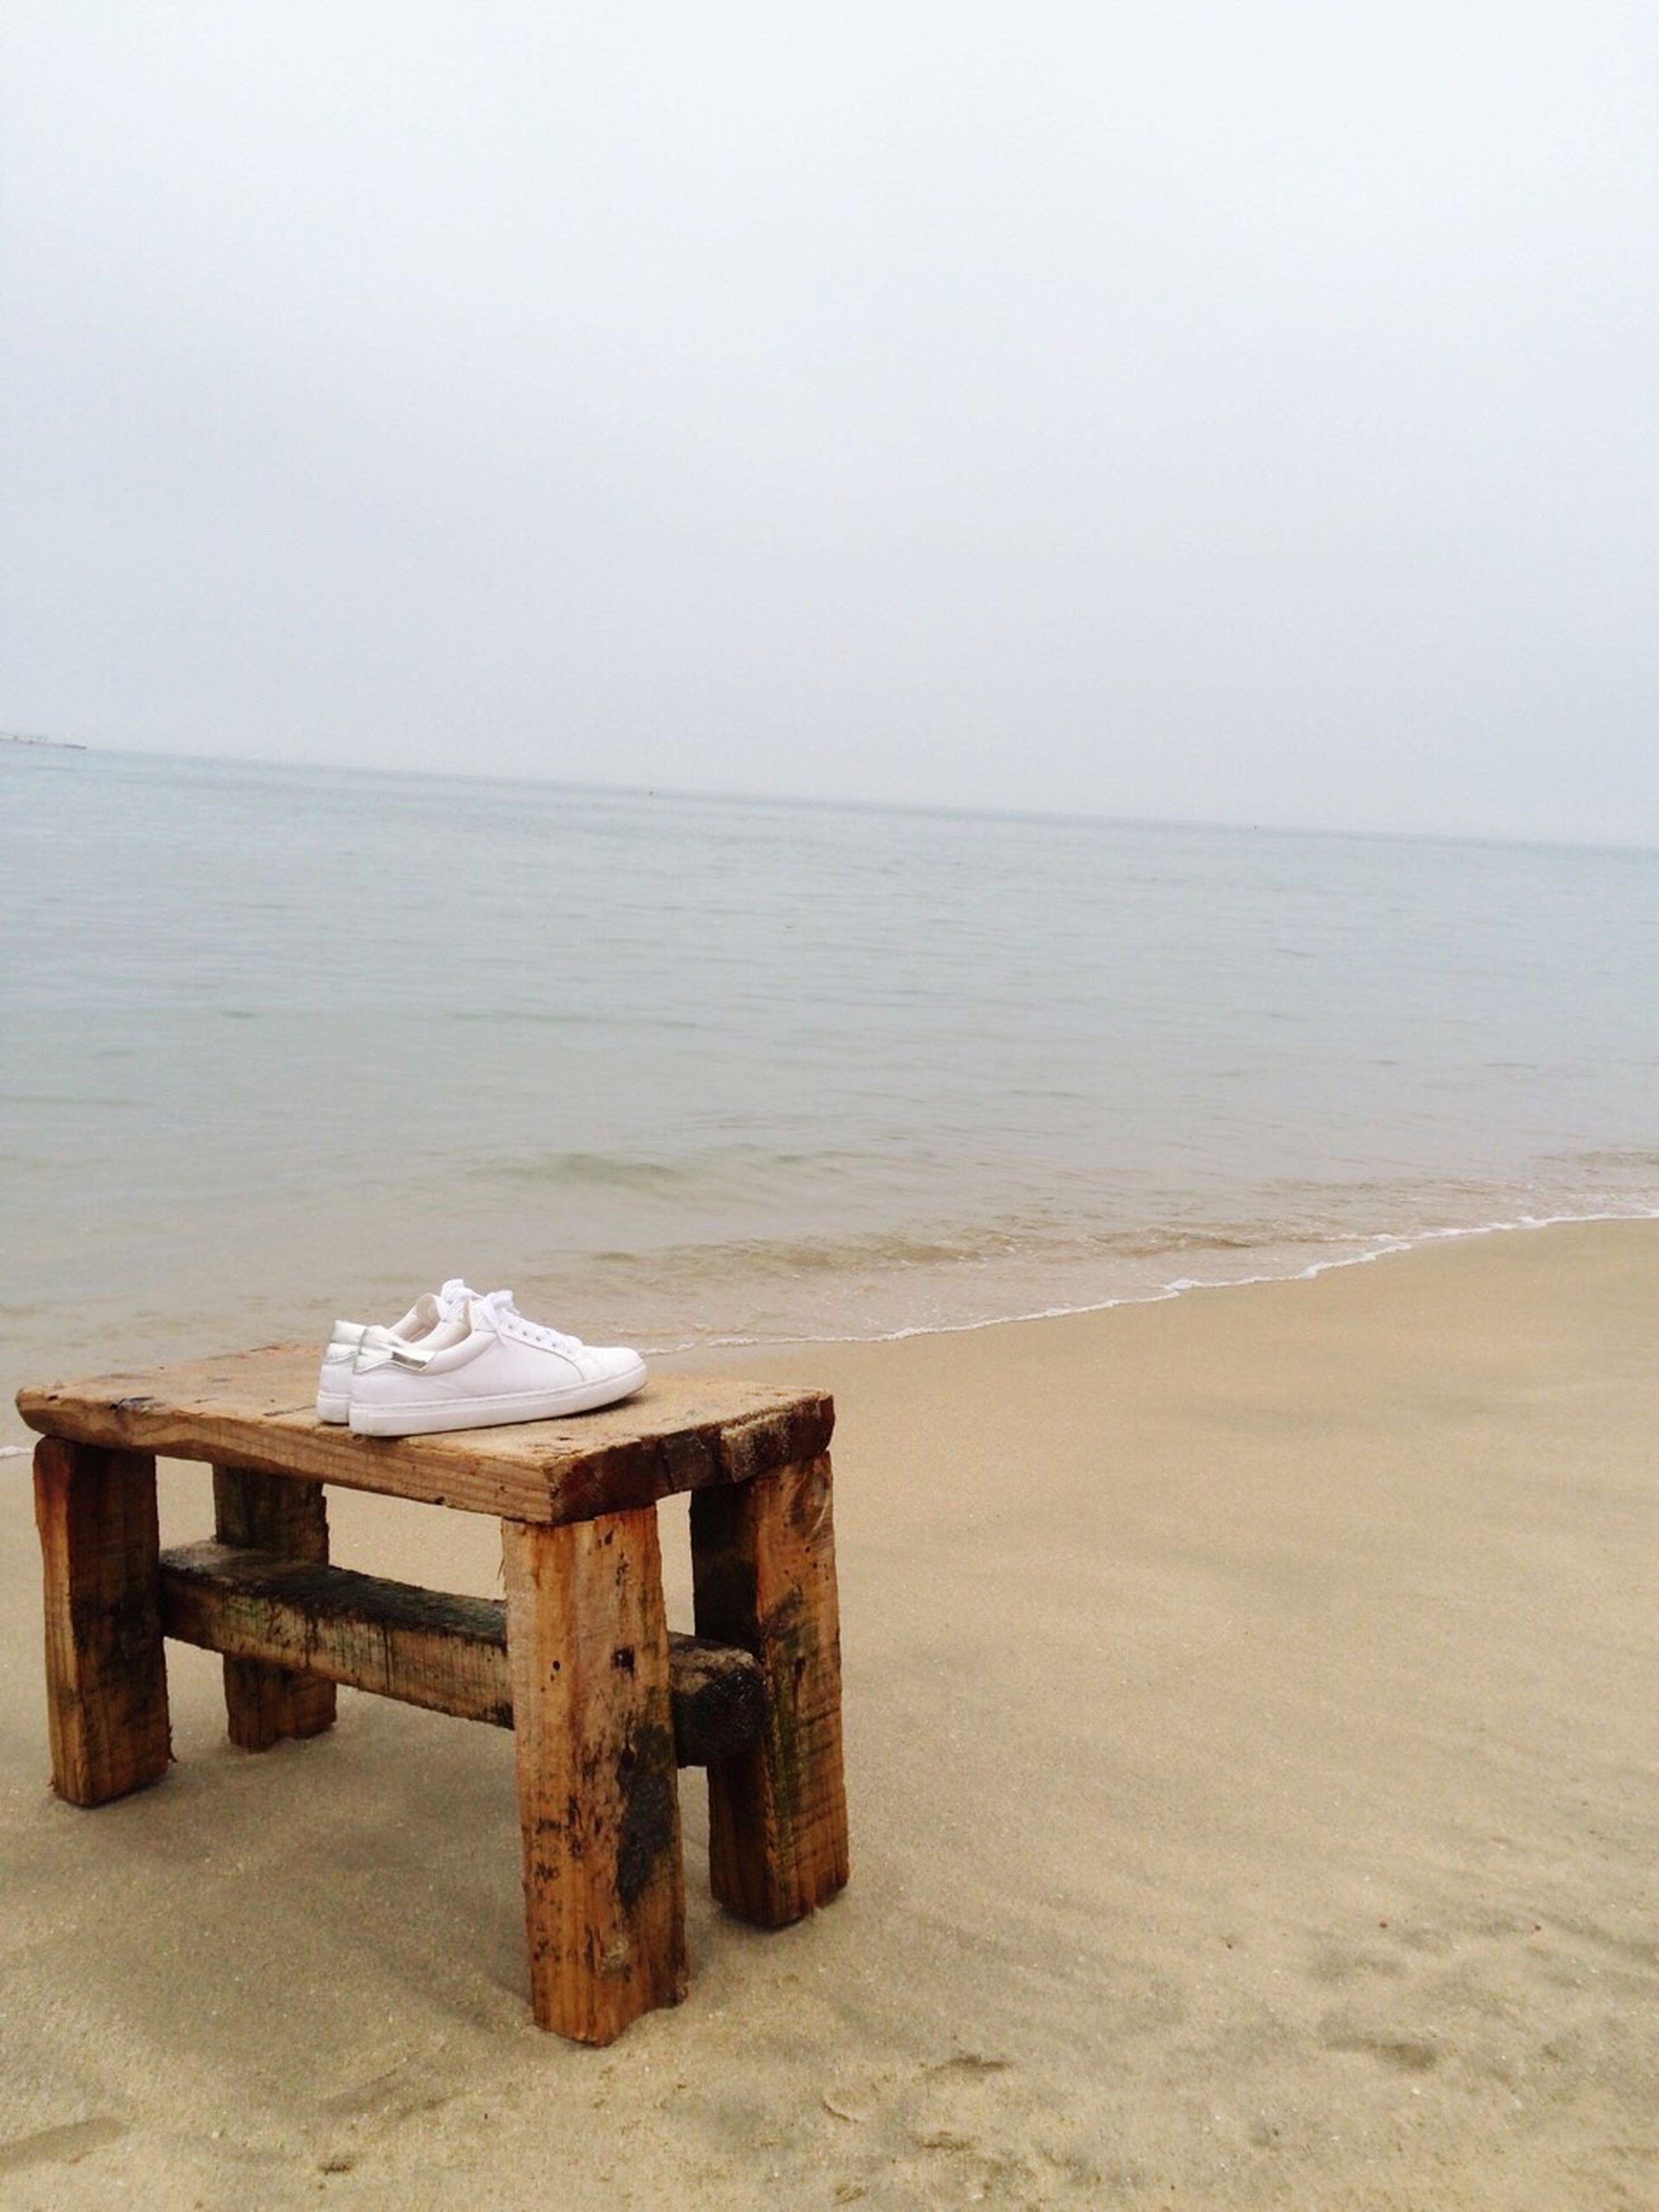 sea, horizon over water, beach, water, sand, tranquil scene, tranquility, wood - material, scenics, shore, clear sky, copy space, absence, beauty in nature, nature, empty, chair, sky, wooden, idyllic